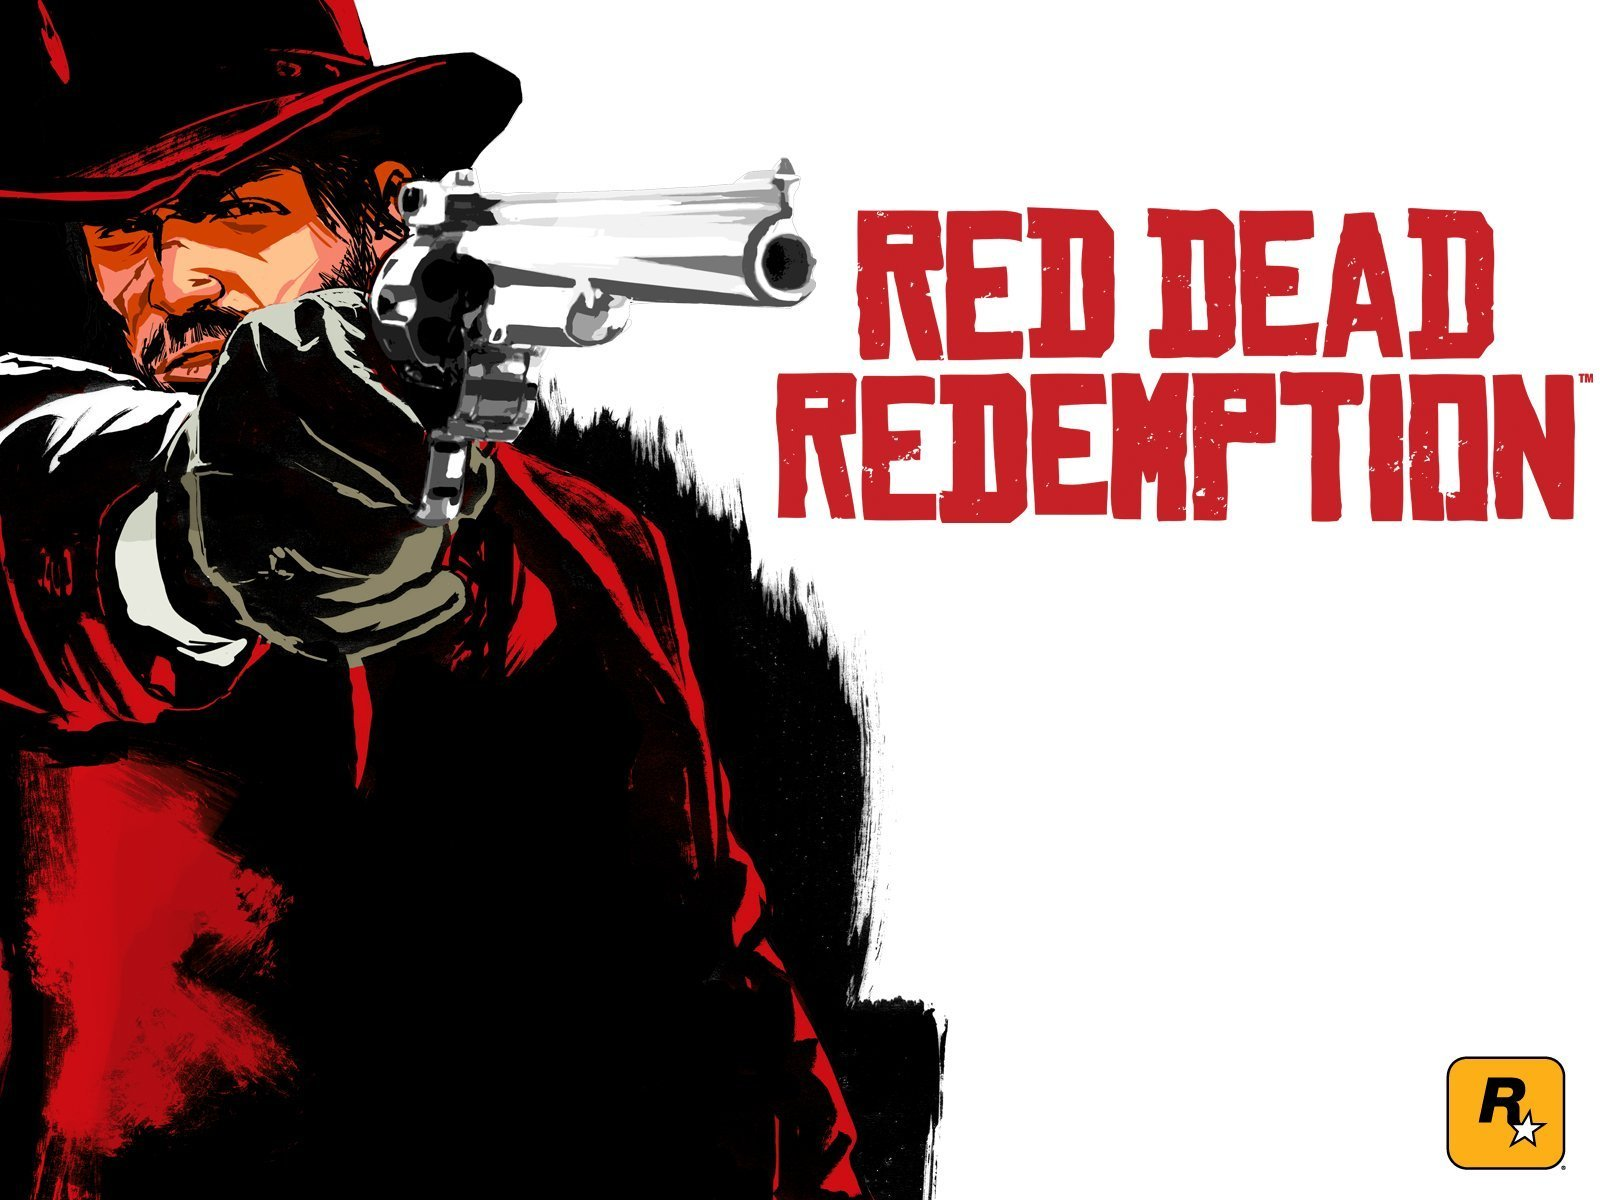 [Obrazek: red_dead_redemption.jpg]